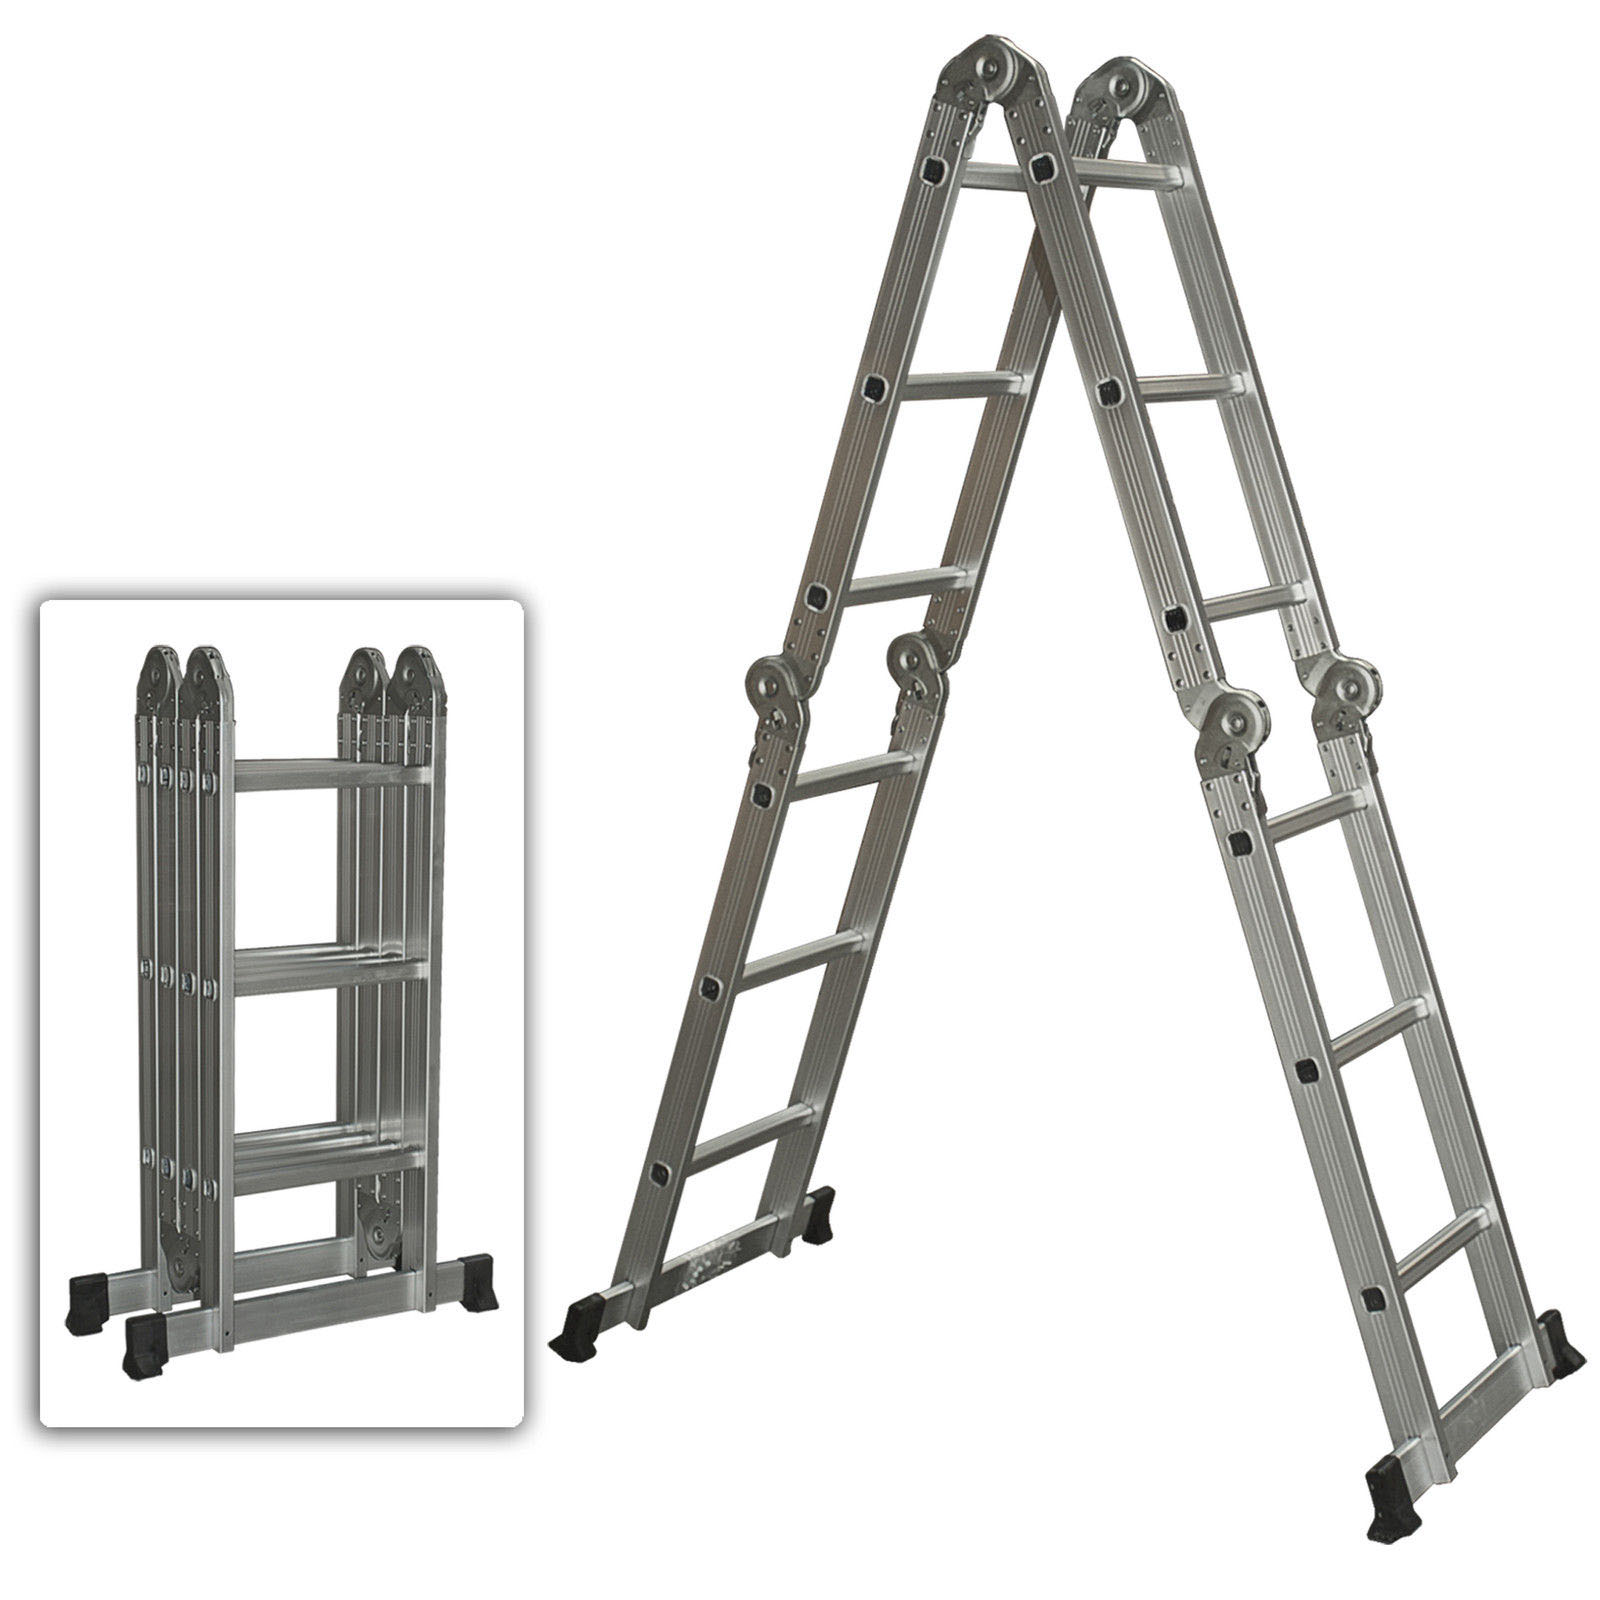 ZAMIL MPL/12 - Multi-Purpose Step Ladder 12FT / 3.6M